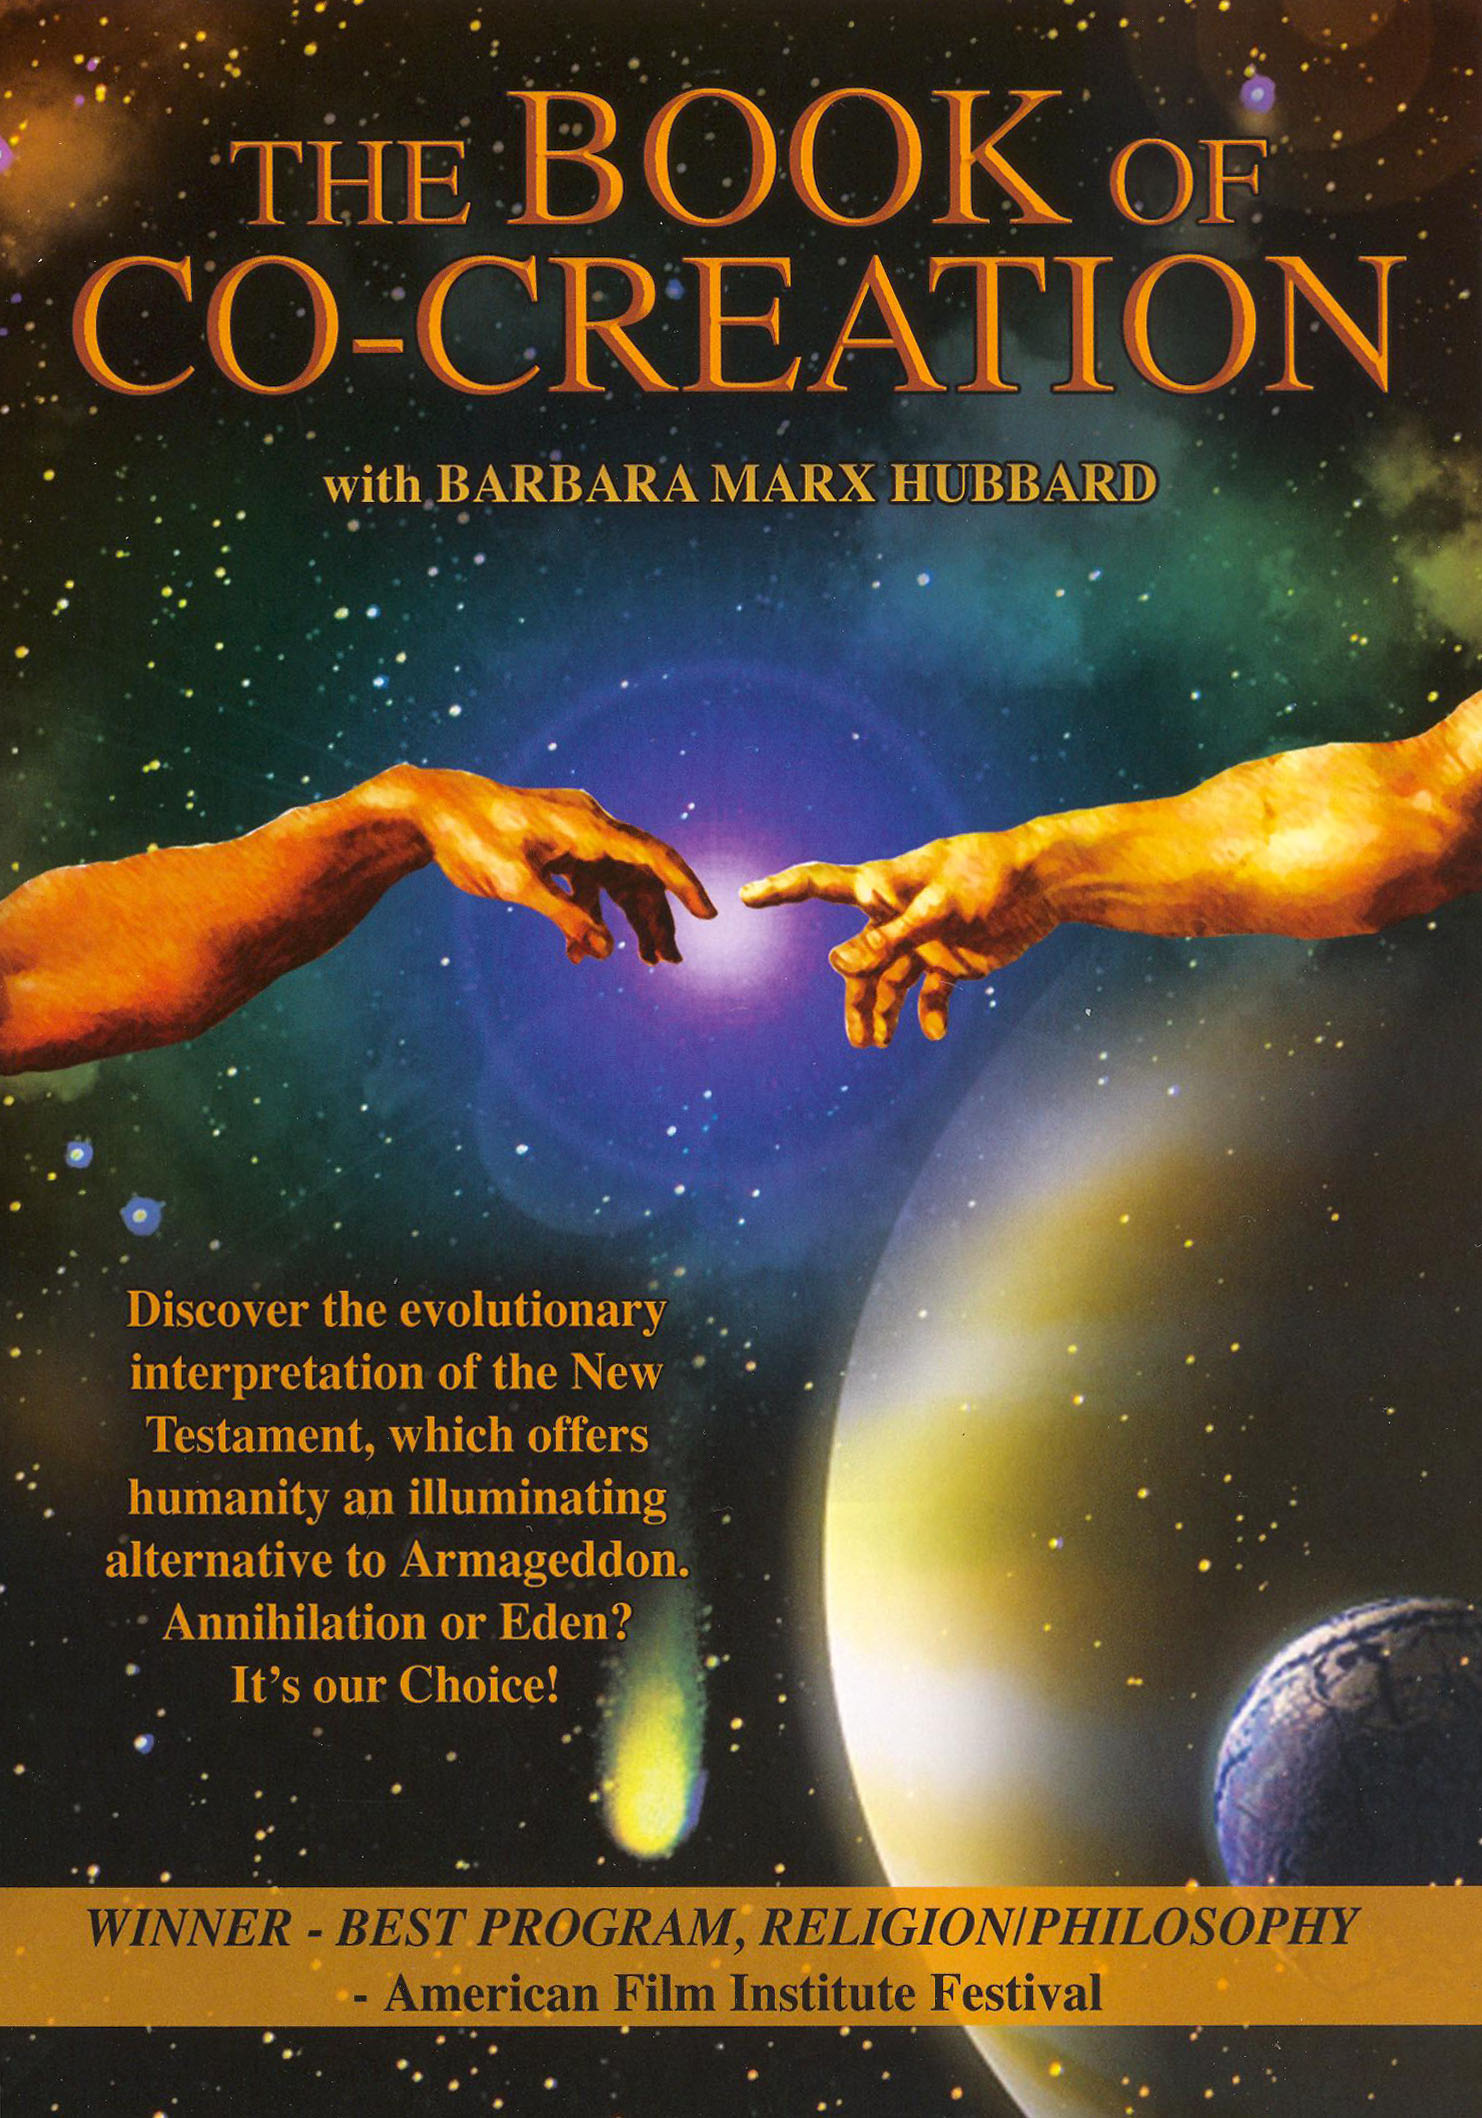 The Book of Co-Creation